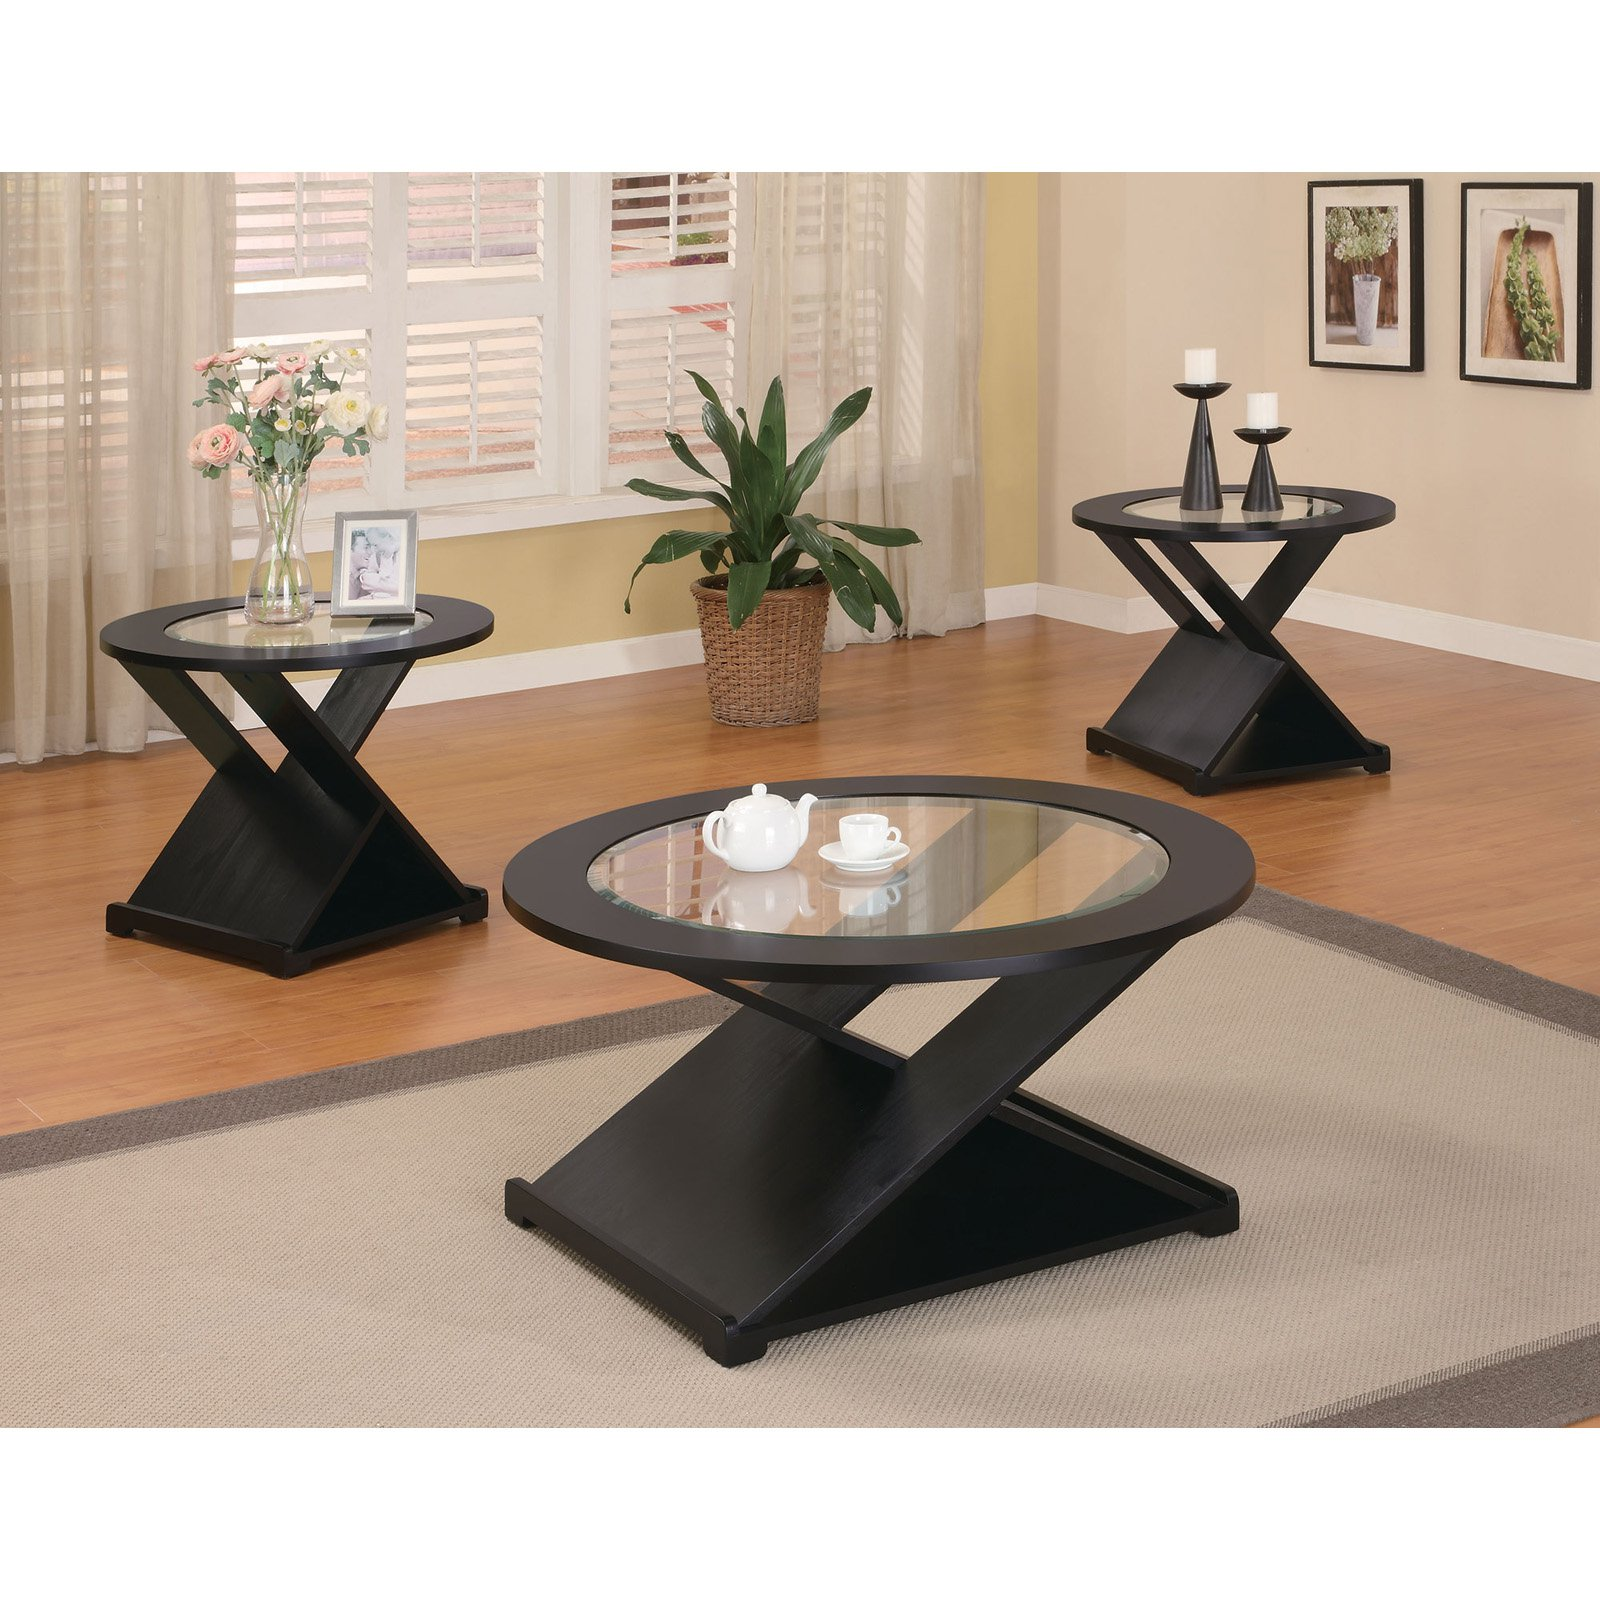 Coaster Furniture 3 Piece X Style Coffee Table Set